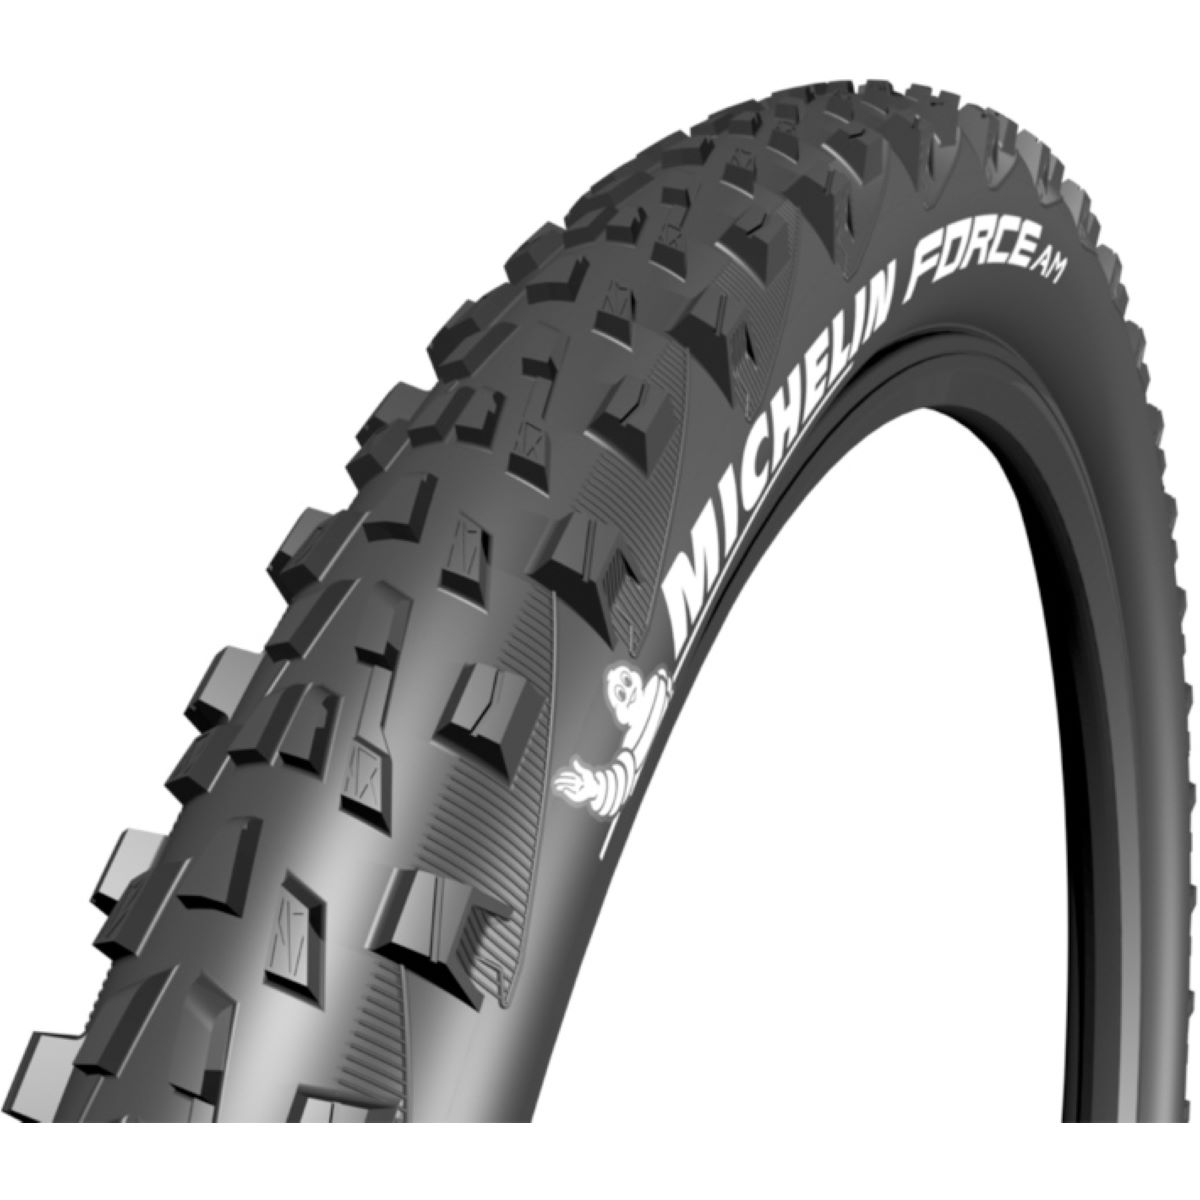 Pneu VTT Michelin Force AM Competition - 2.25' 26' Noir Pneus